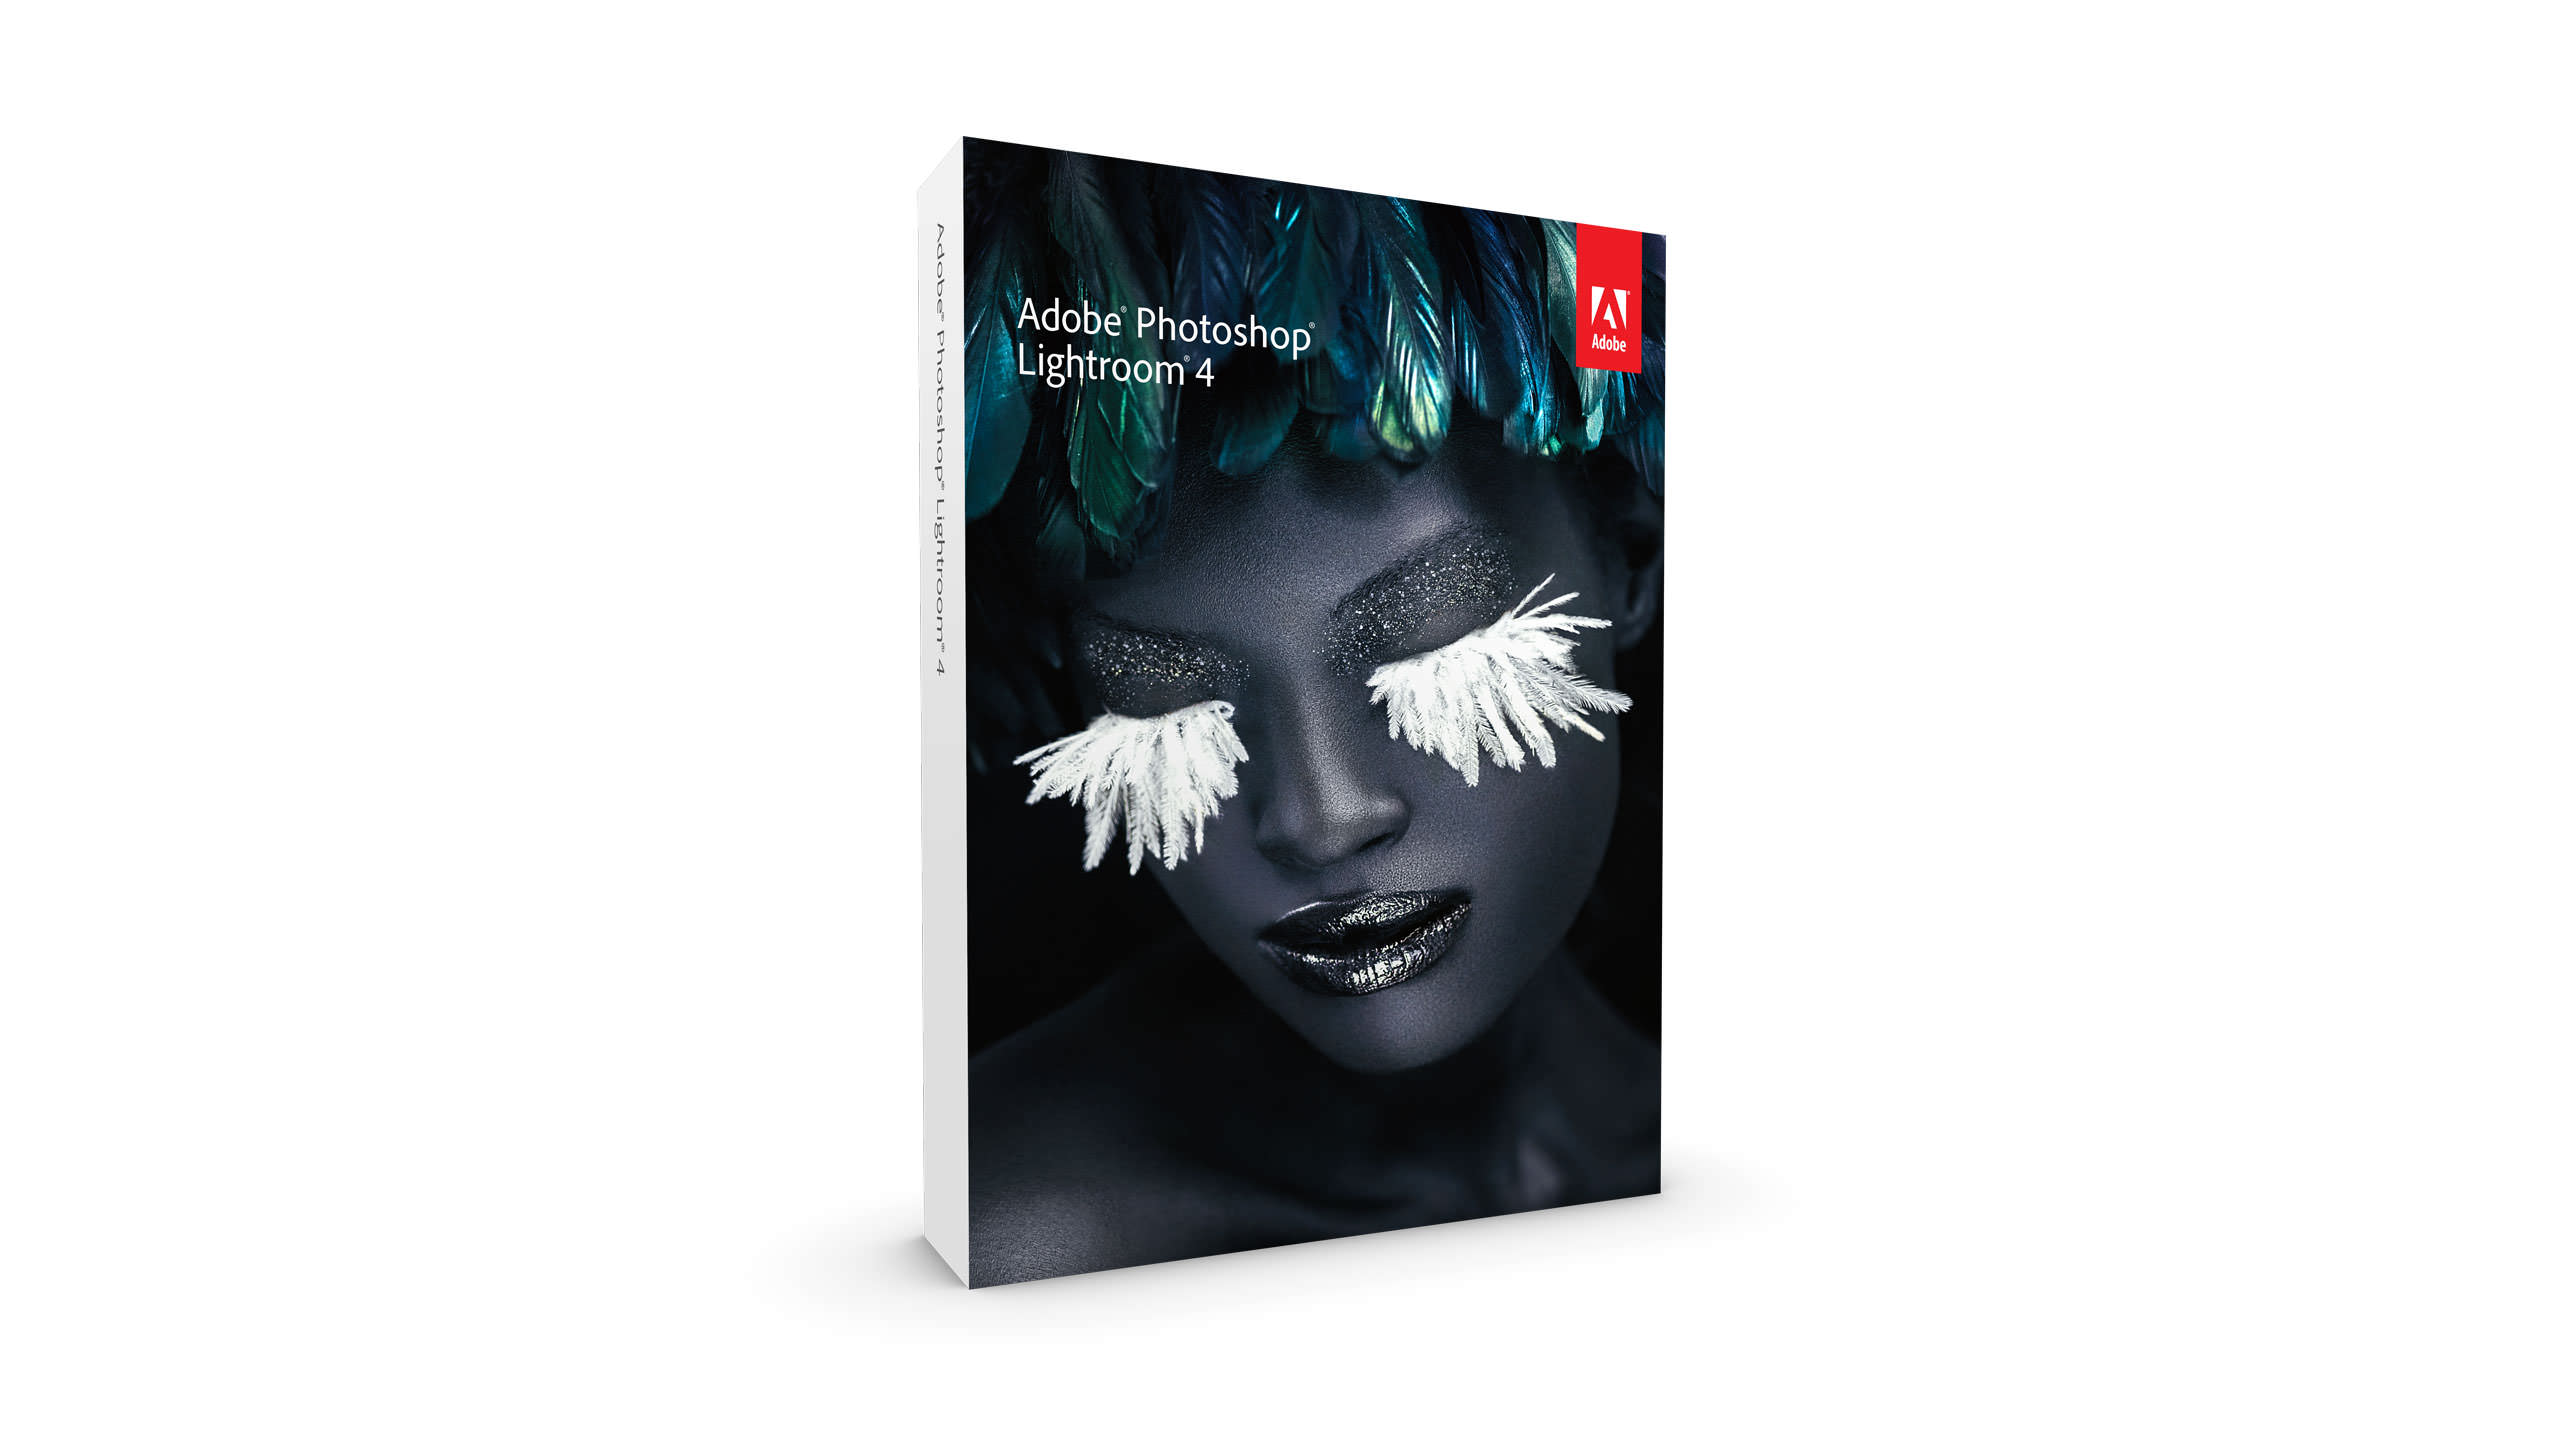 Adobe Lightroom 4 Packaging - Front of Box